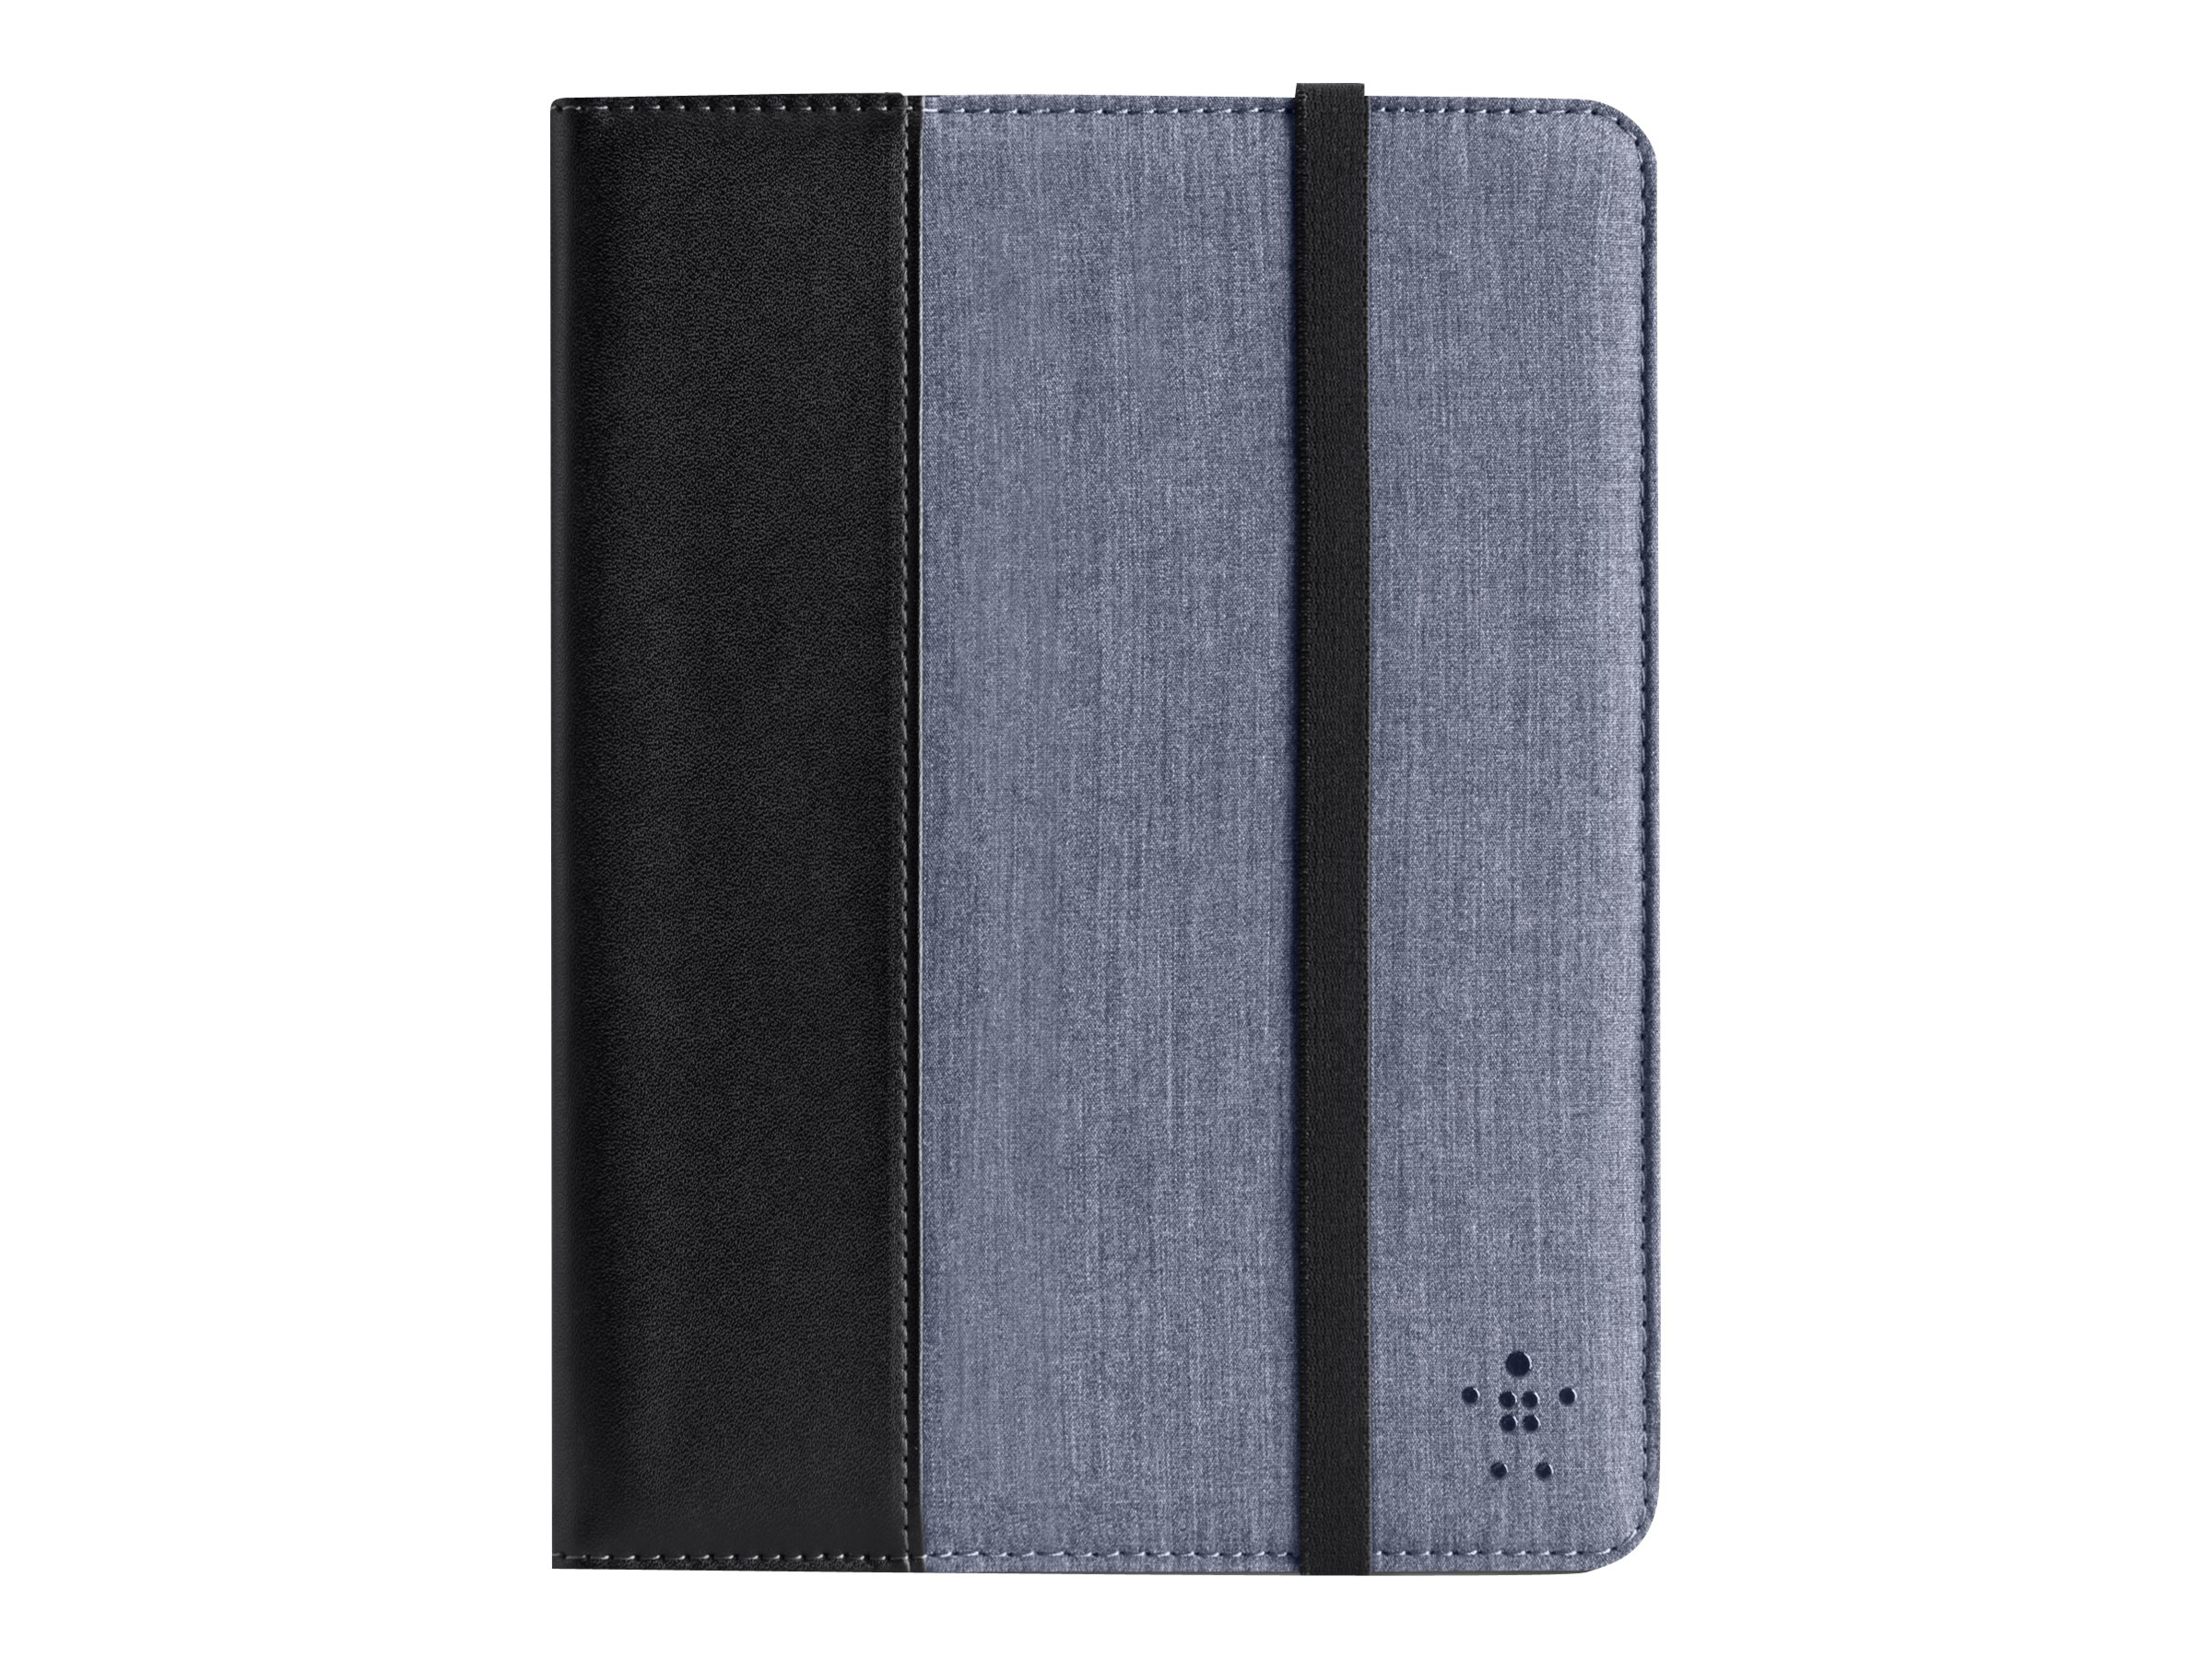 Belkin Chambray Cover with Stand for Kindle Fire HD 7, Blacktop Blue, F8N885TTC01